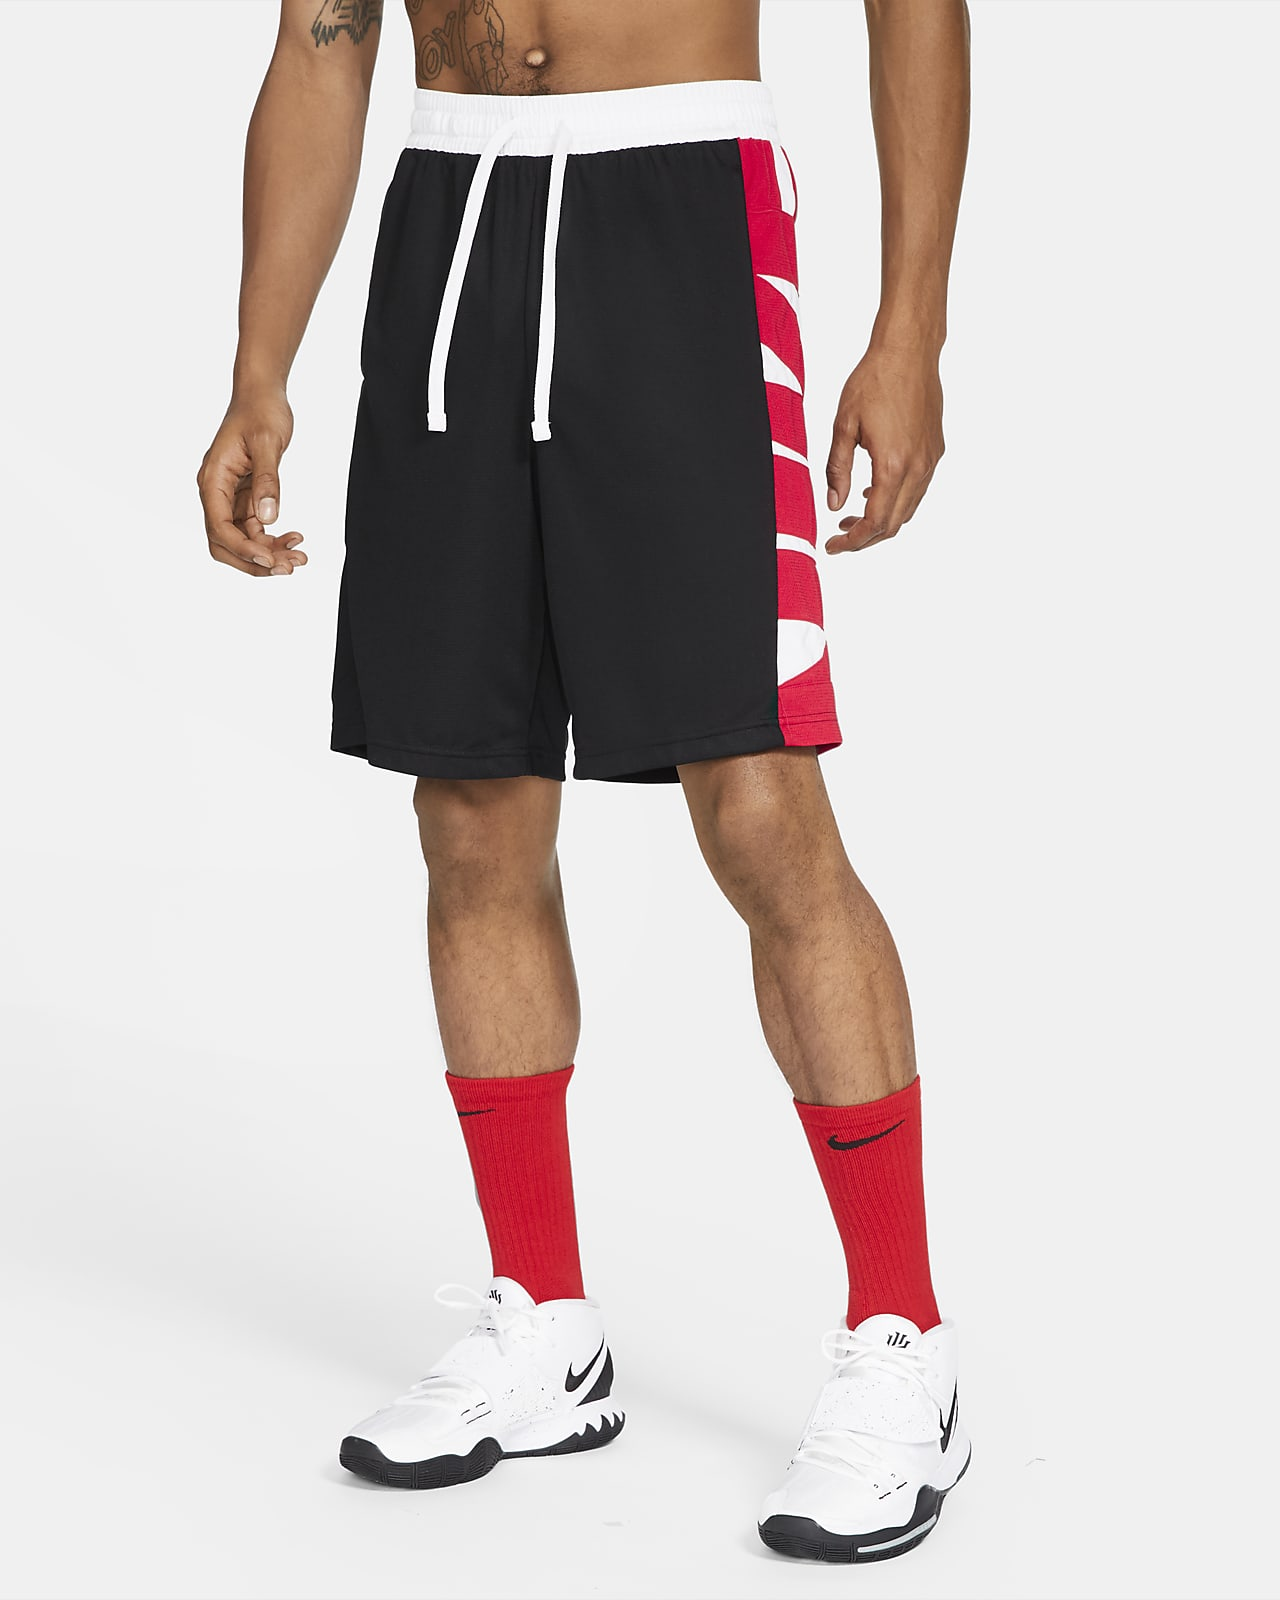 Shorts da basket Nike Dri-FIT - Uomo